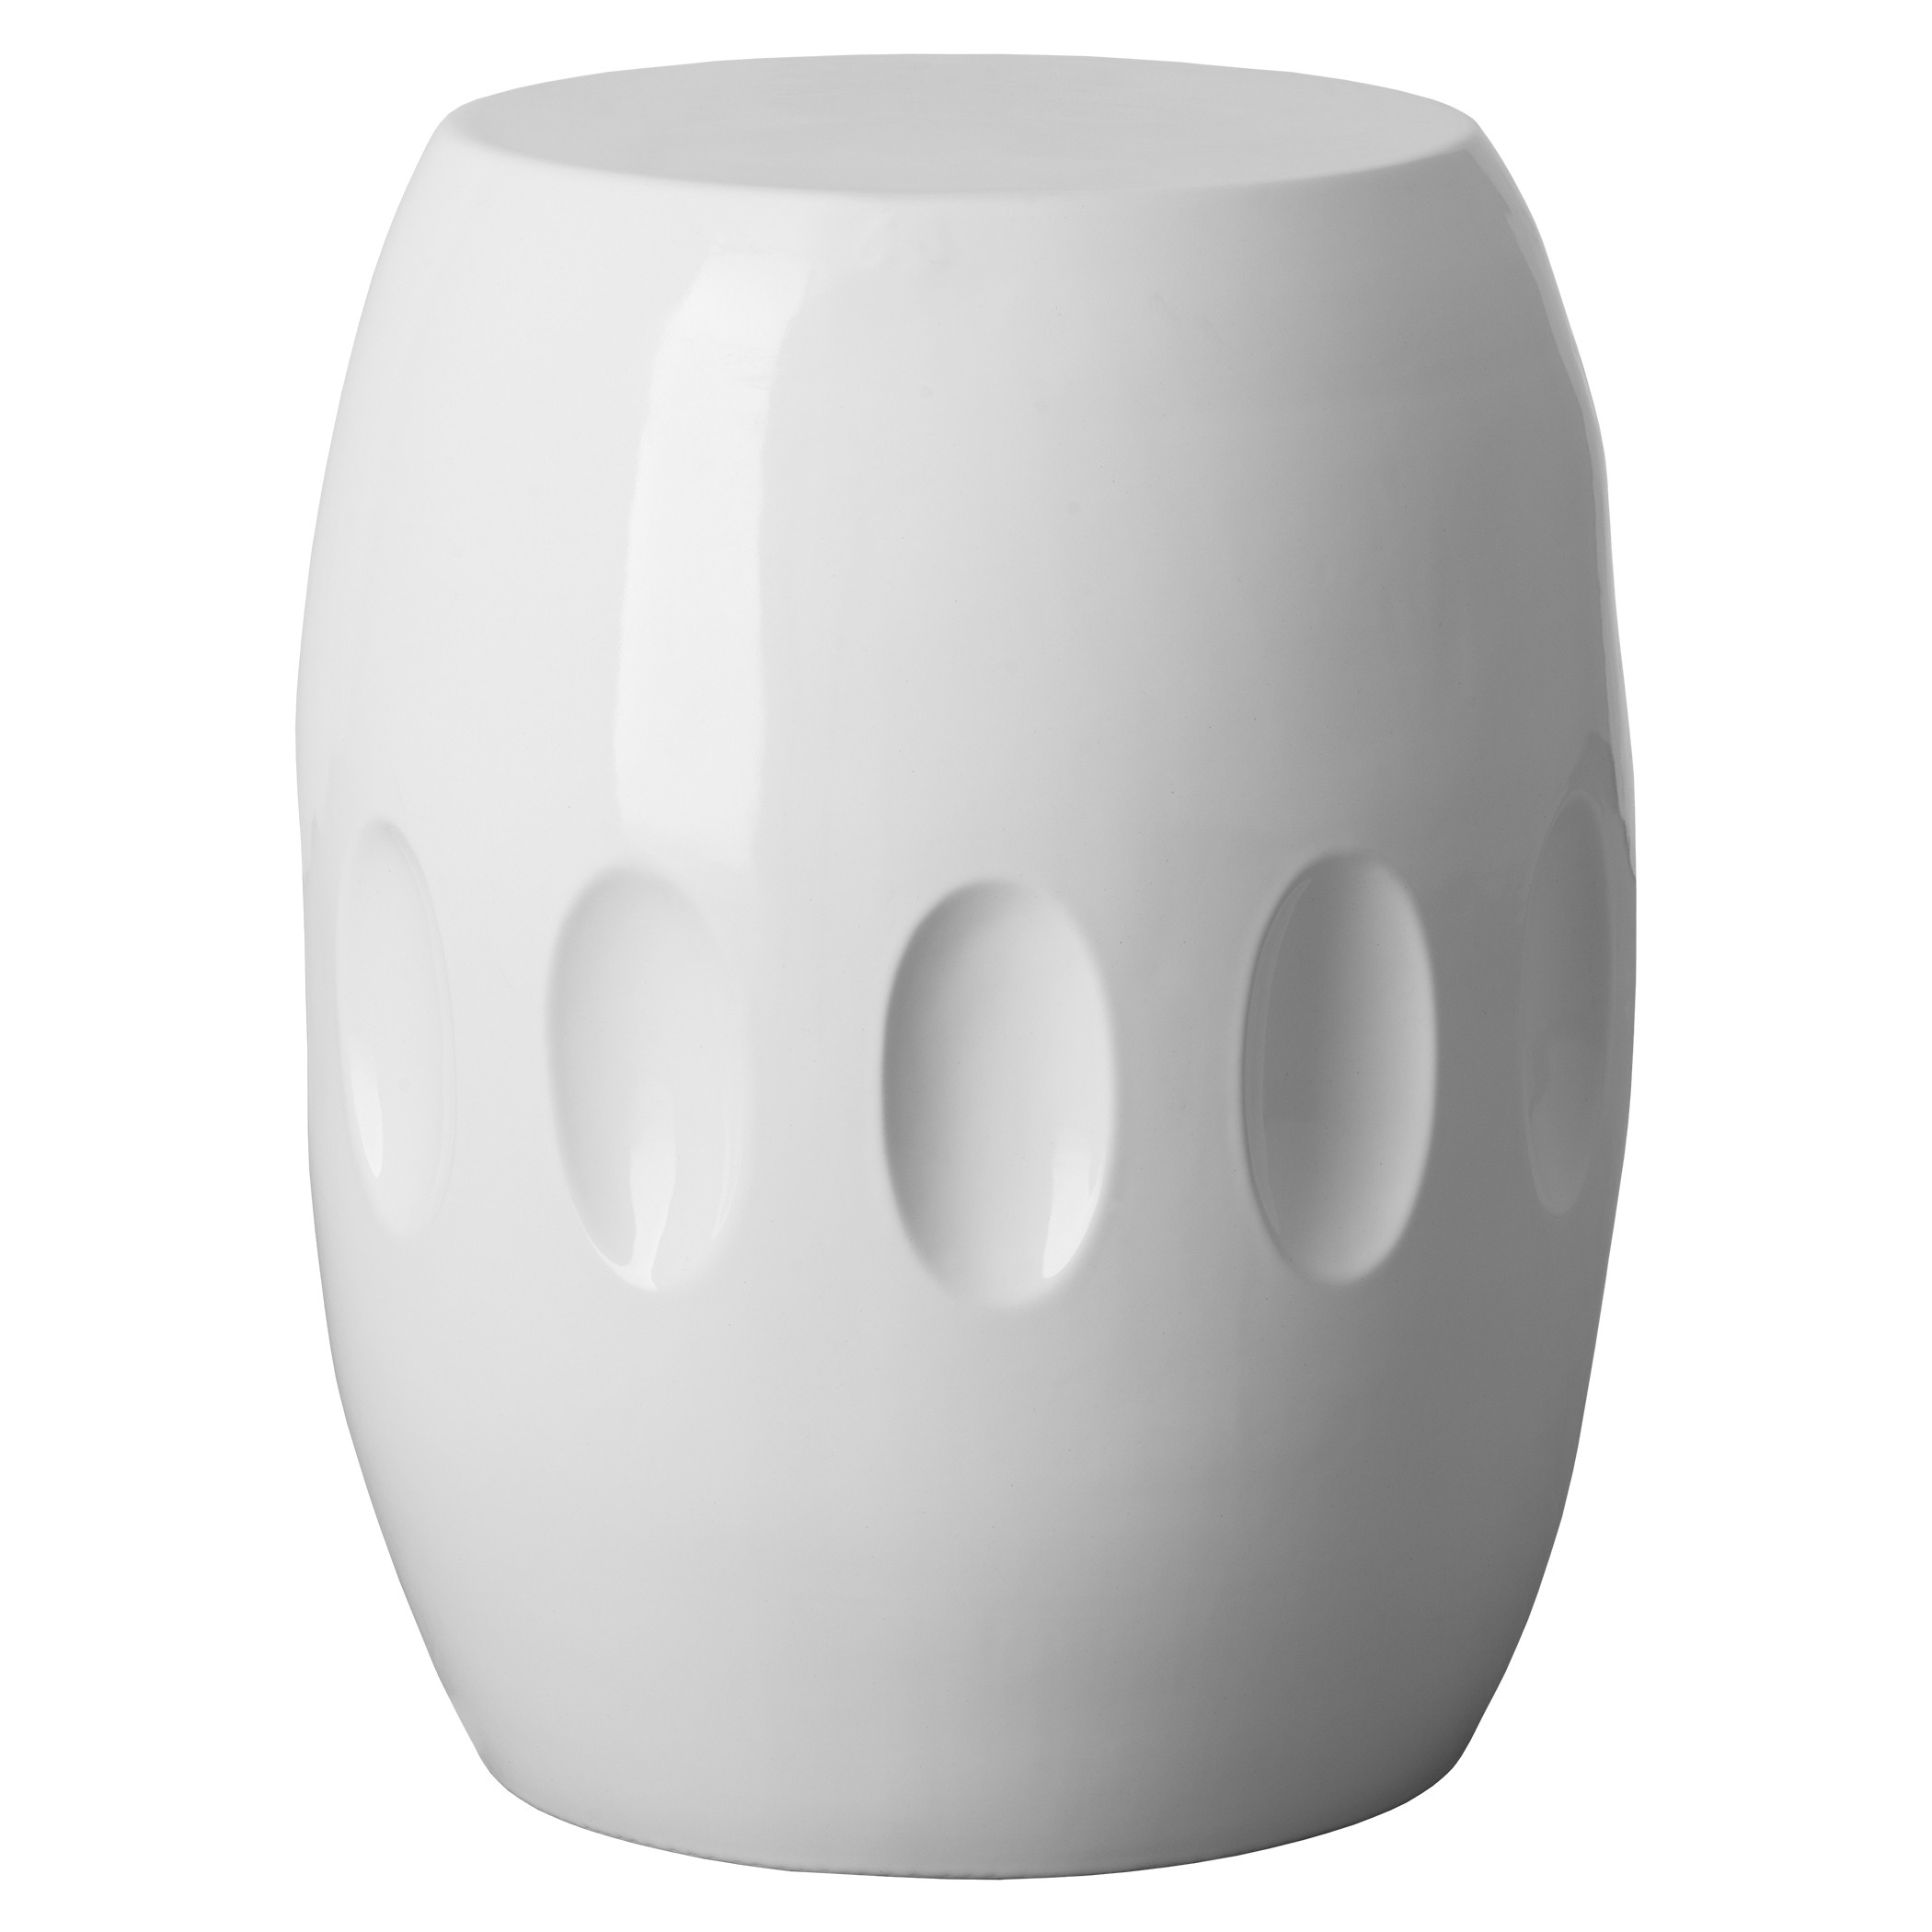 shipping harmony free white paradise garden overstock safavieh ceramic product home stool today